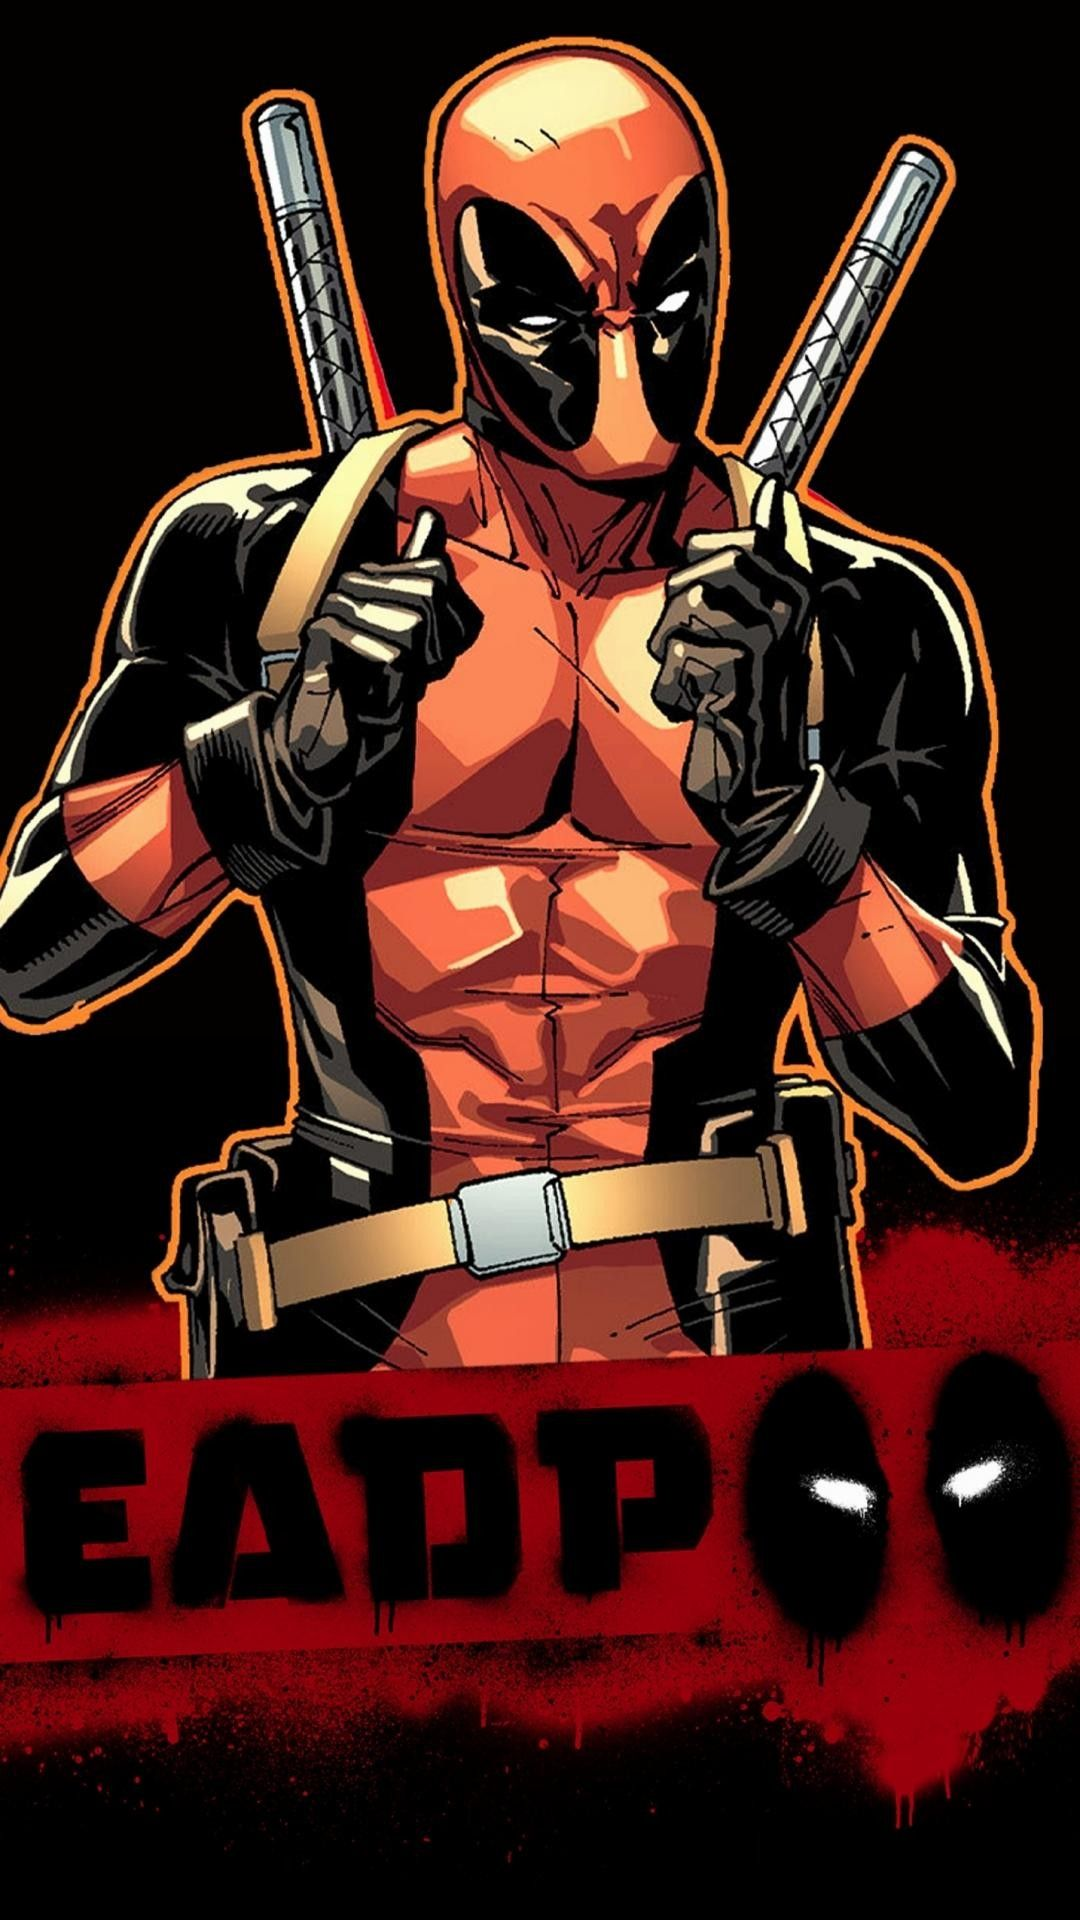 140 Funny Deadpool Android Iphone Desktop Hd Backgrounds Wallpapers 1080p 4k 1080x1920 2020